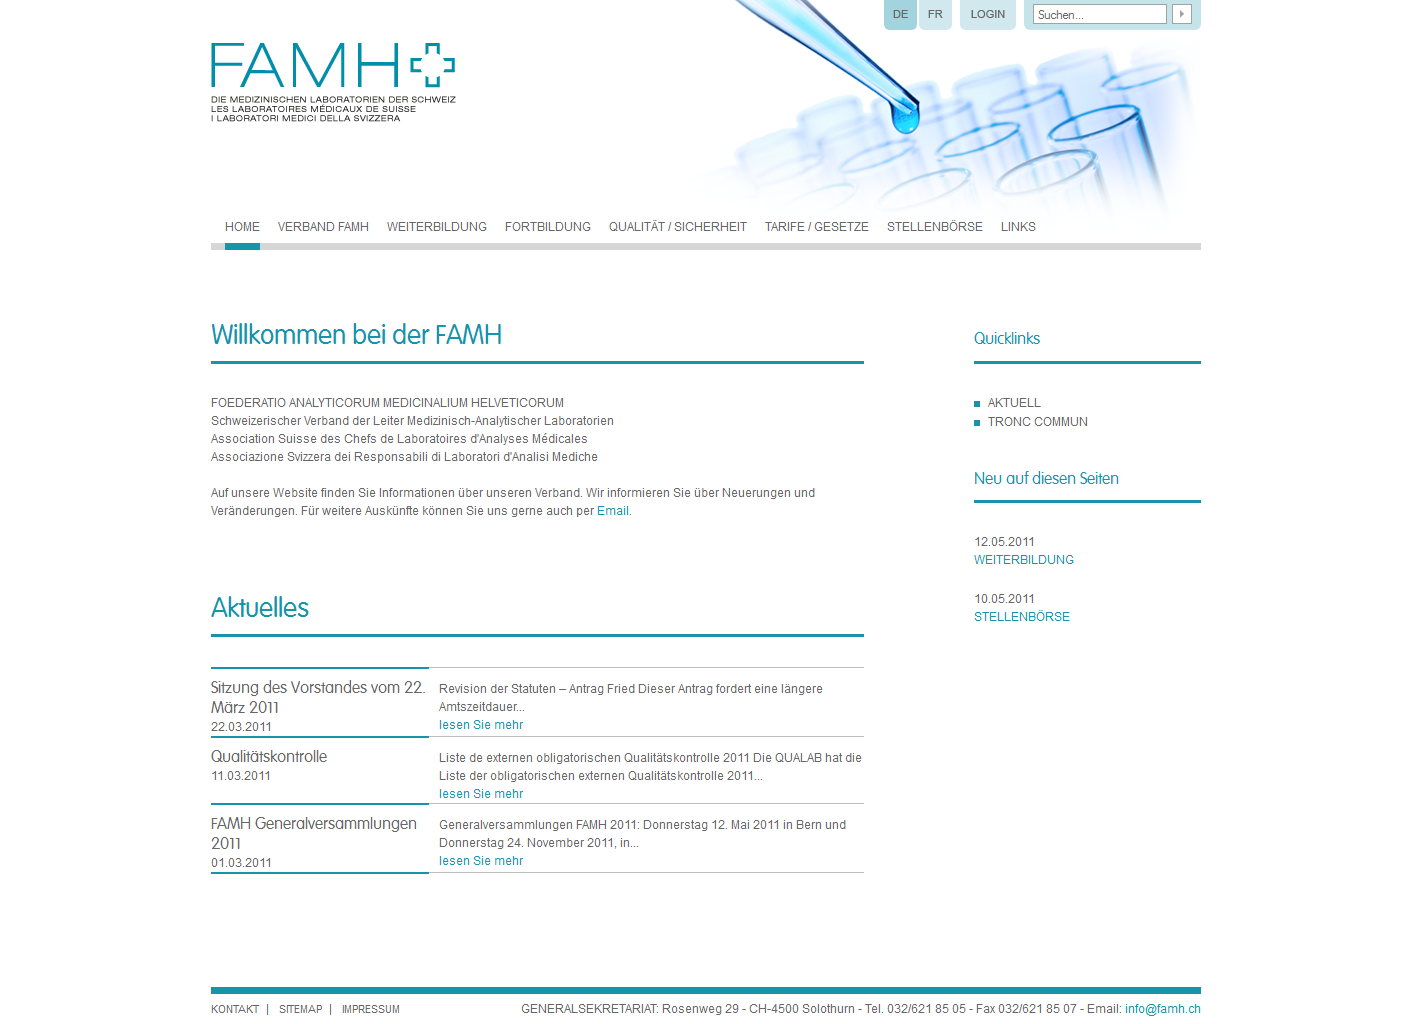 FAMH  - The medical labratories of switzerland (rico)